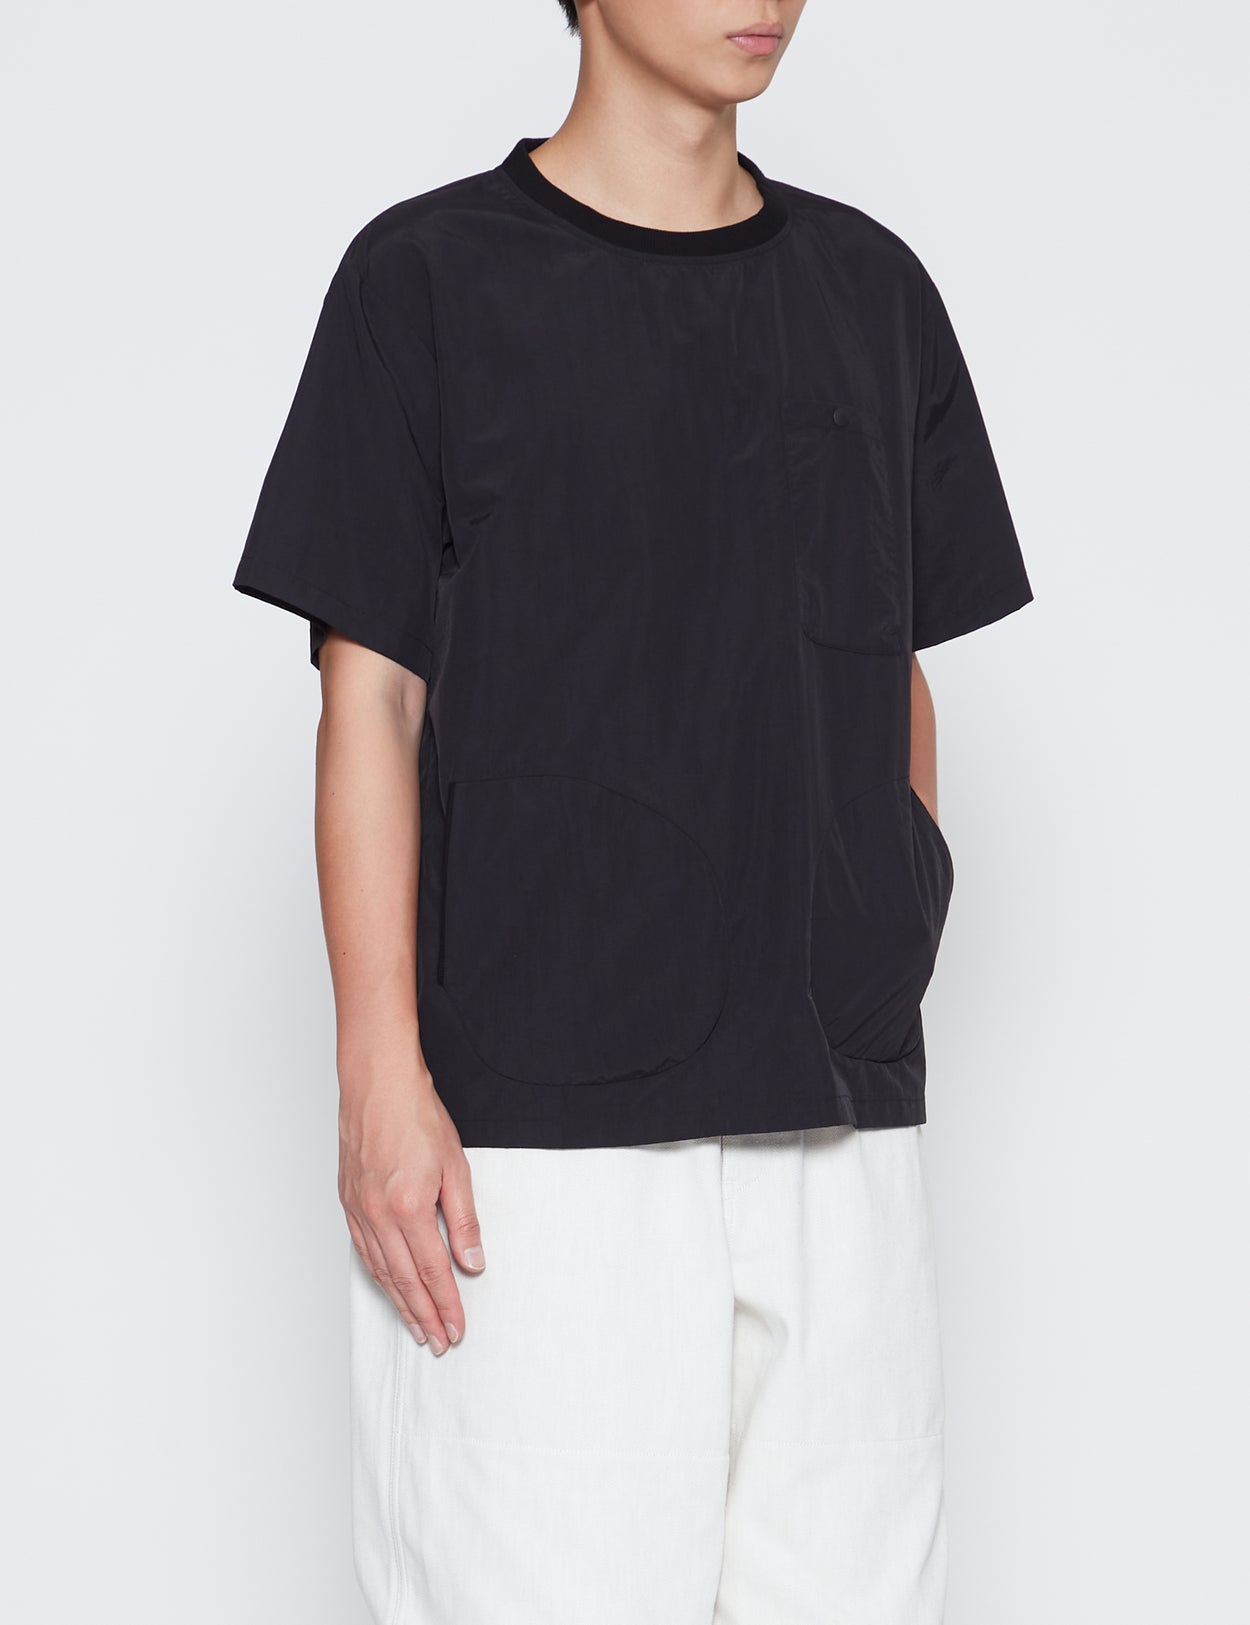 BLACK SUPPLEX SHORT SLEEVE POCKET T-SHIRT